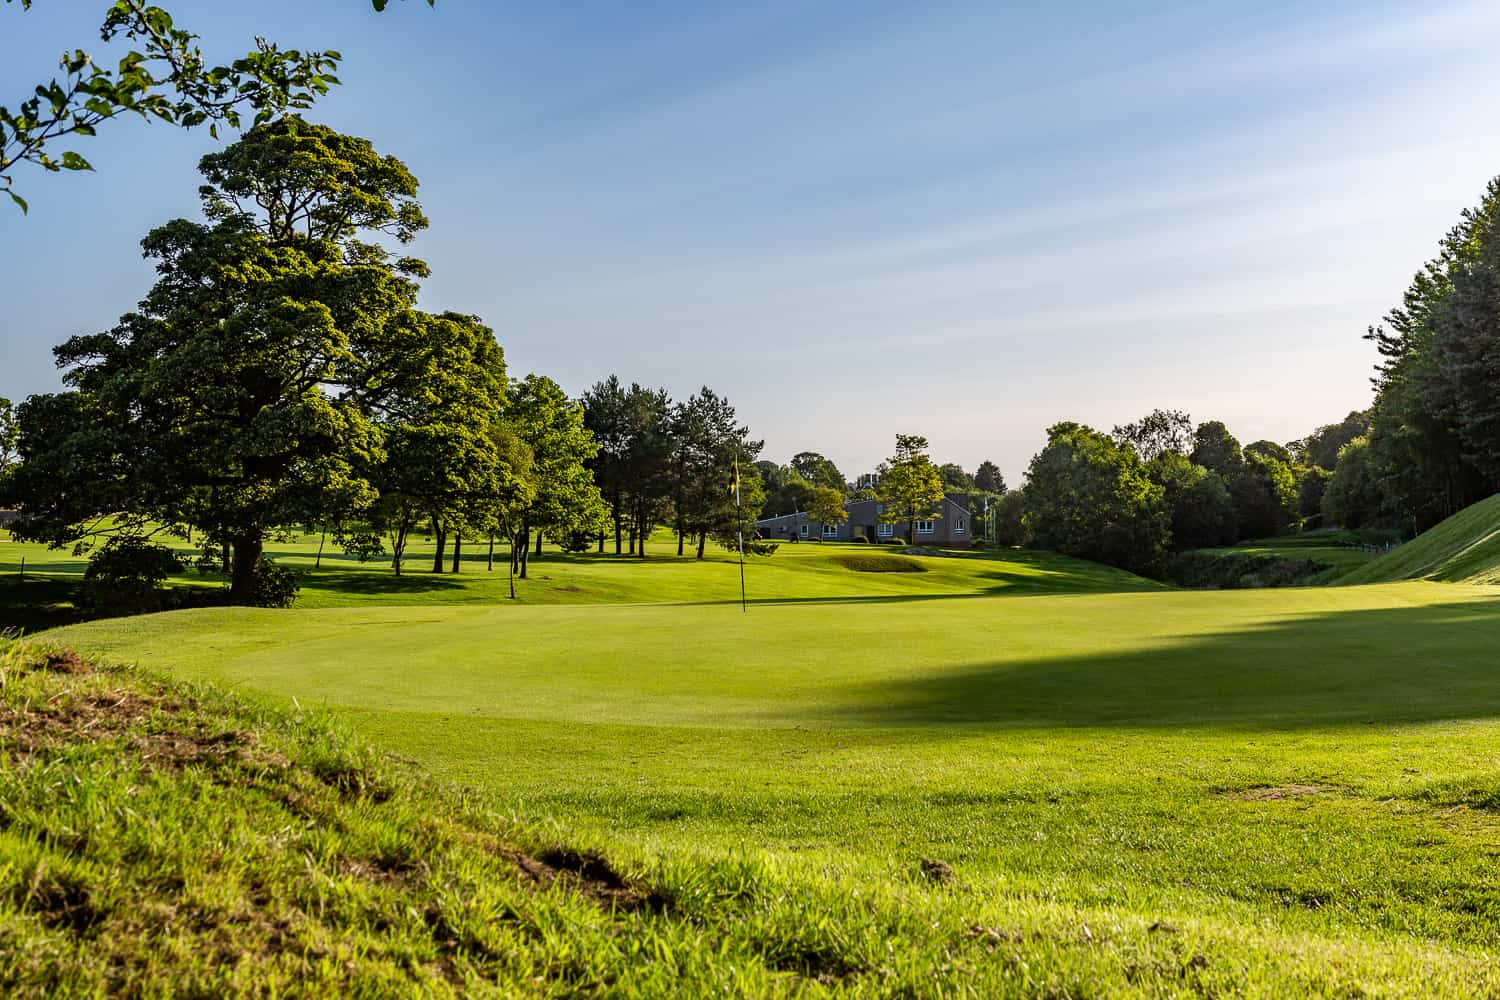 Uphall_Golf_Club_Course_Images (4 of 32)